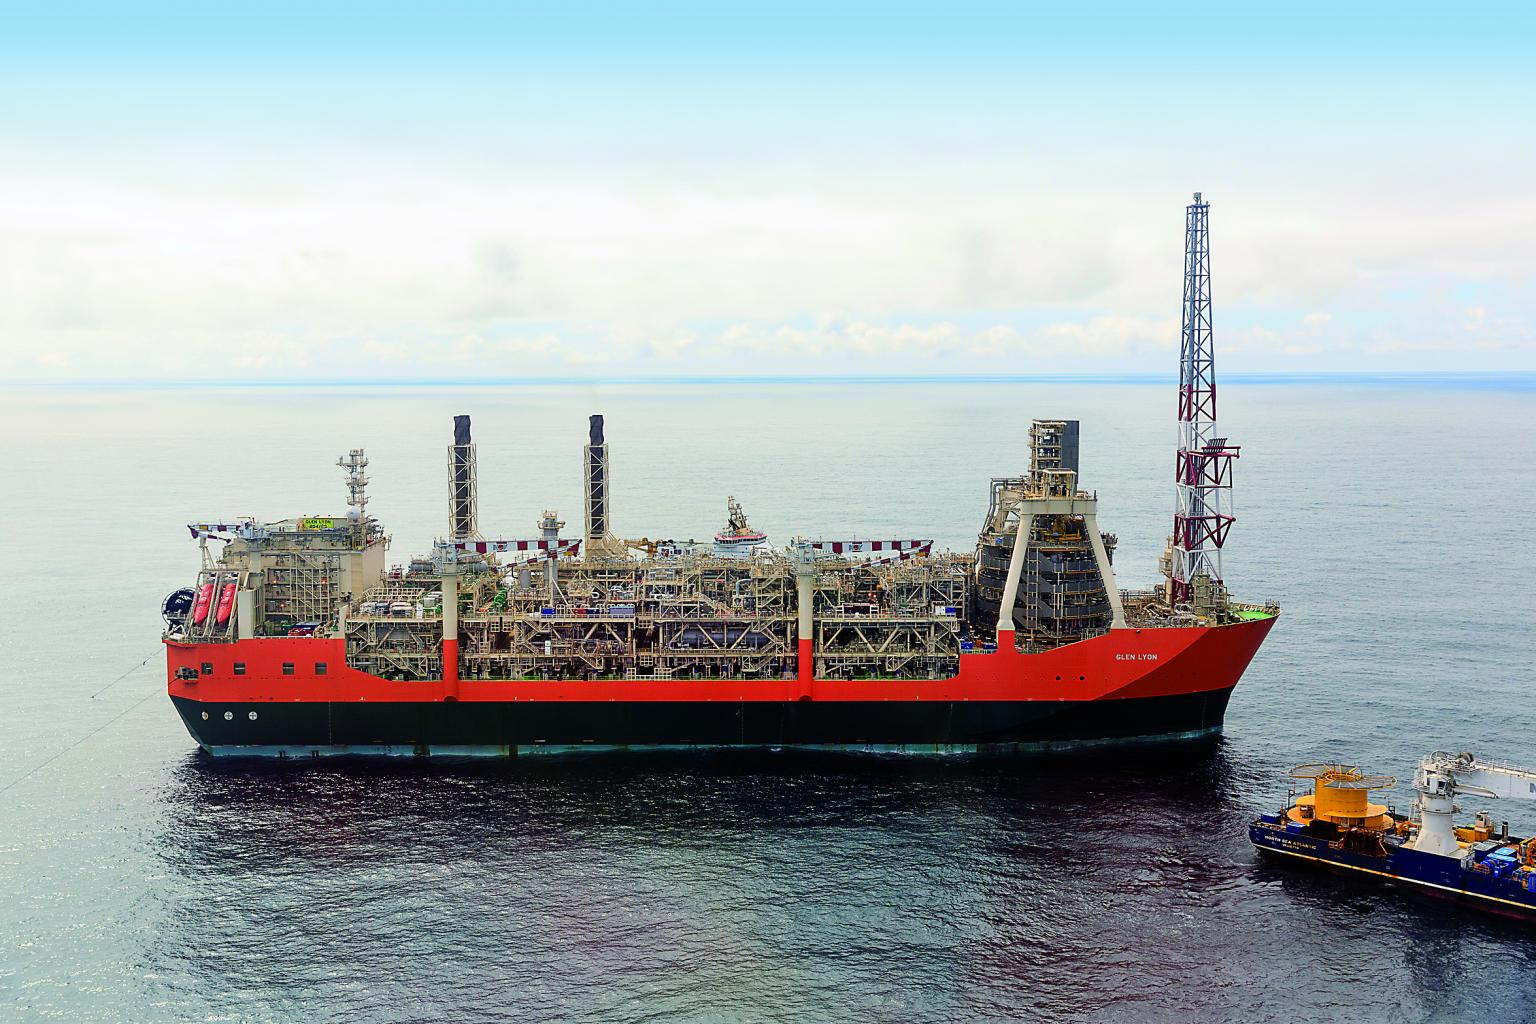 Emerson has completed its multi-year, US$90 million automated prject for BP's Glen Lyon floating FPS0 vessel west of Shetland